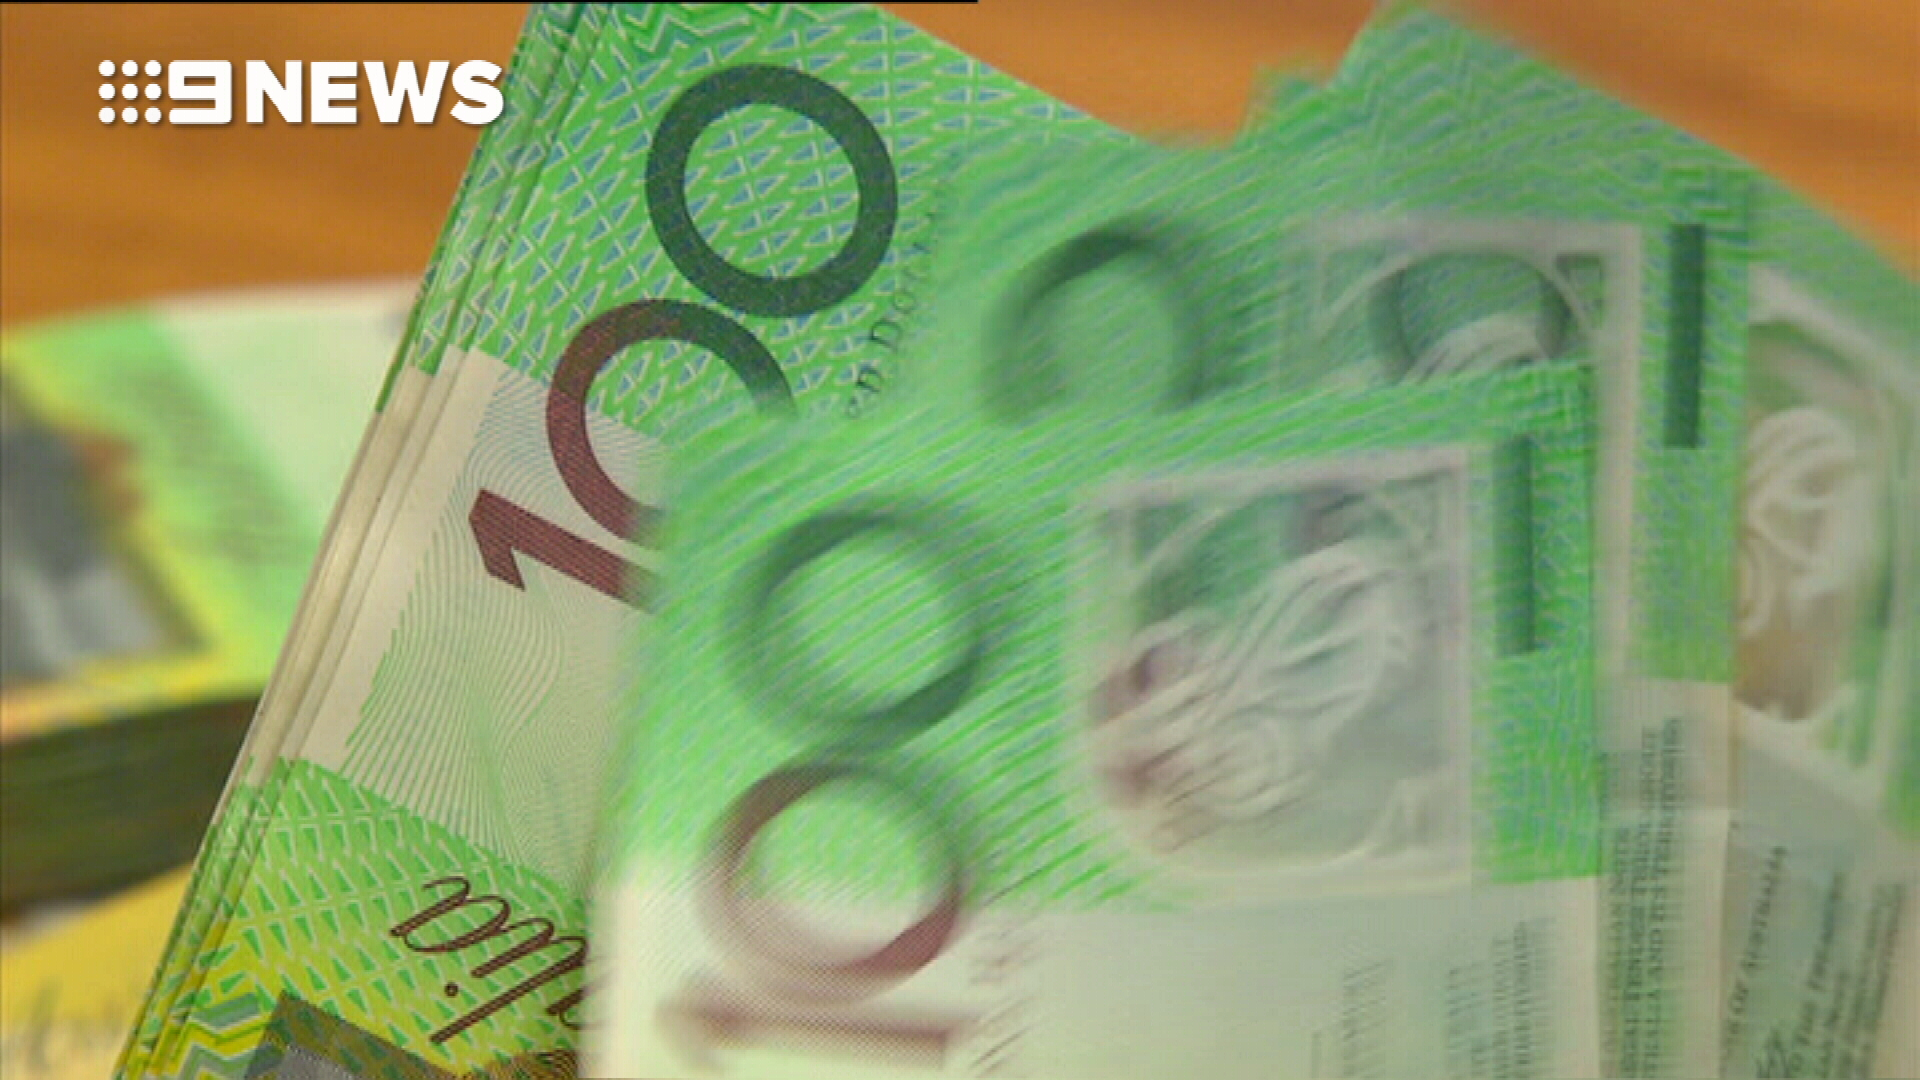 Pressure builds for government's tax cut plan